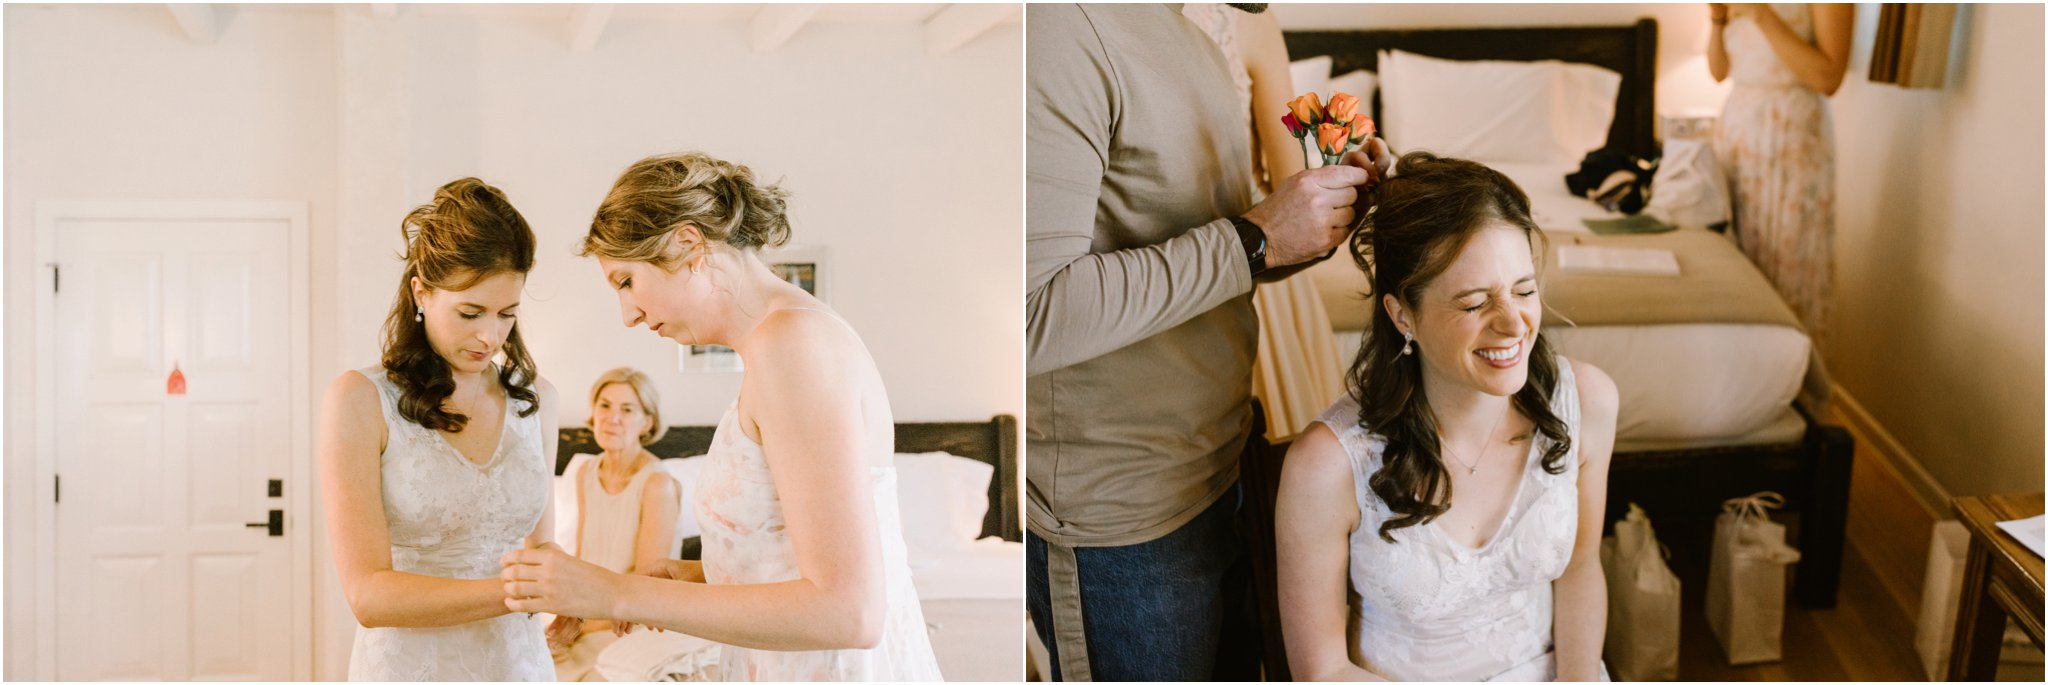 0249Los Poblanos Weddings Blue Rose Photography Studios